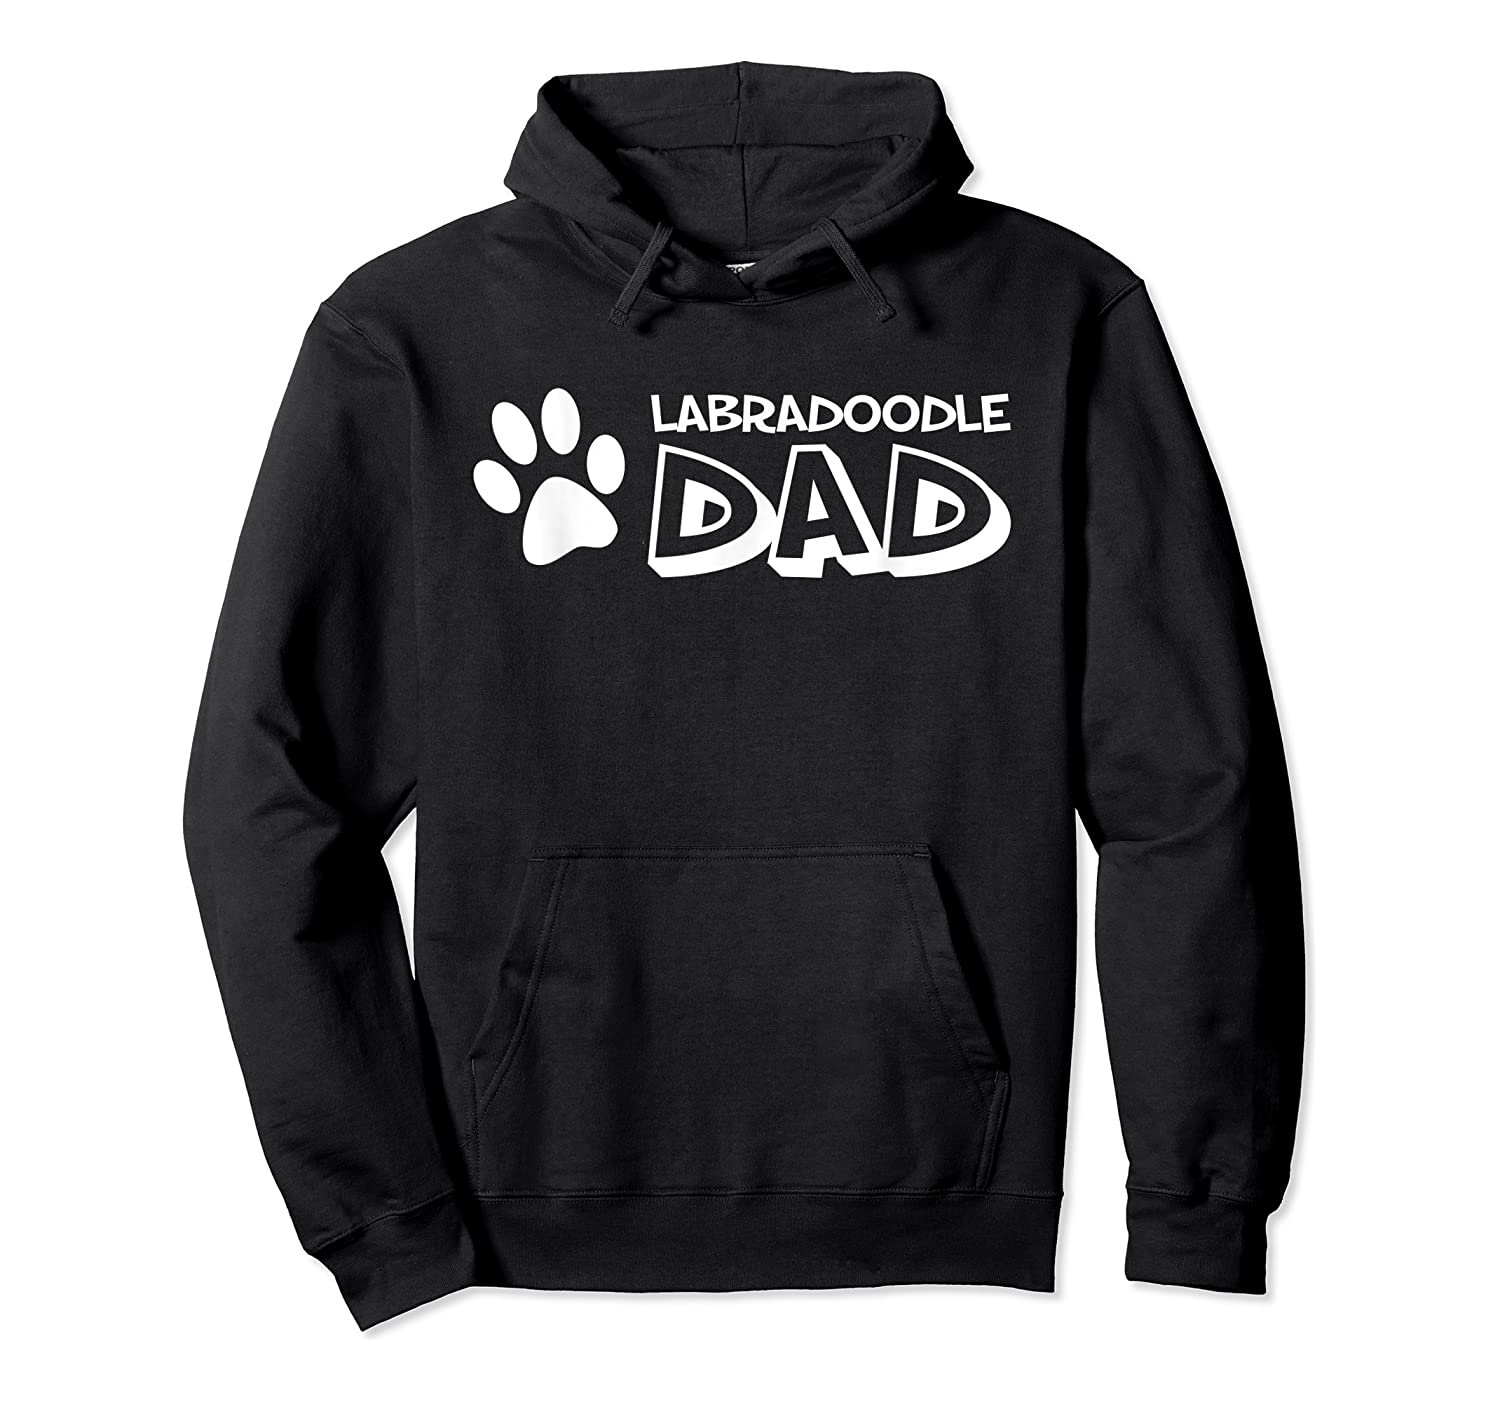 S Labradoodle Dad T-shirt For  Unisex Pullover Hoodie